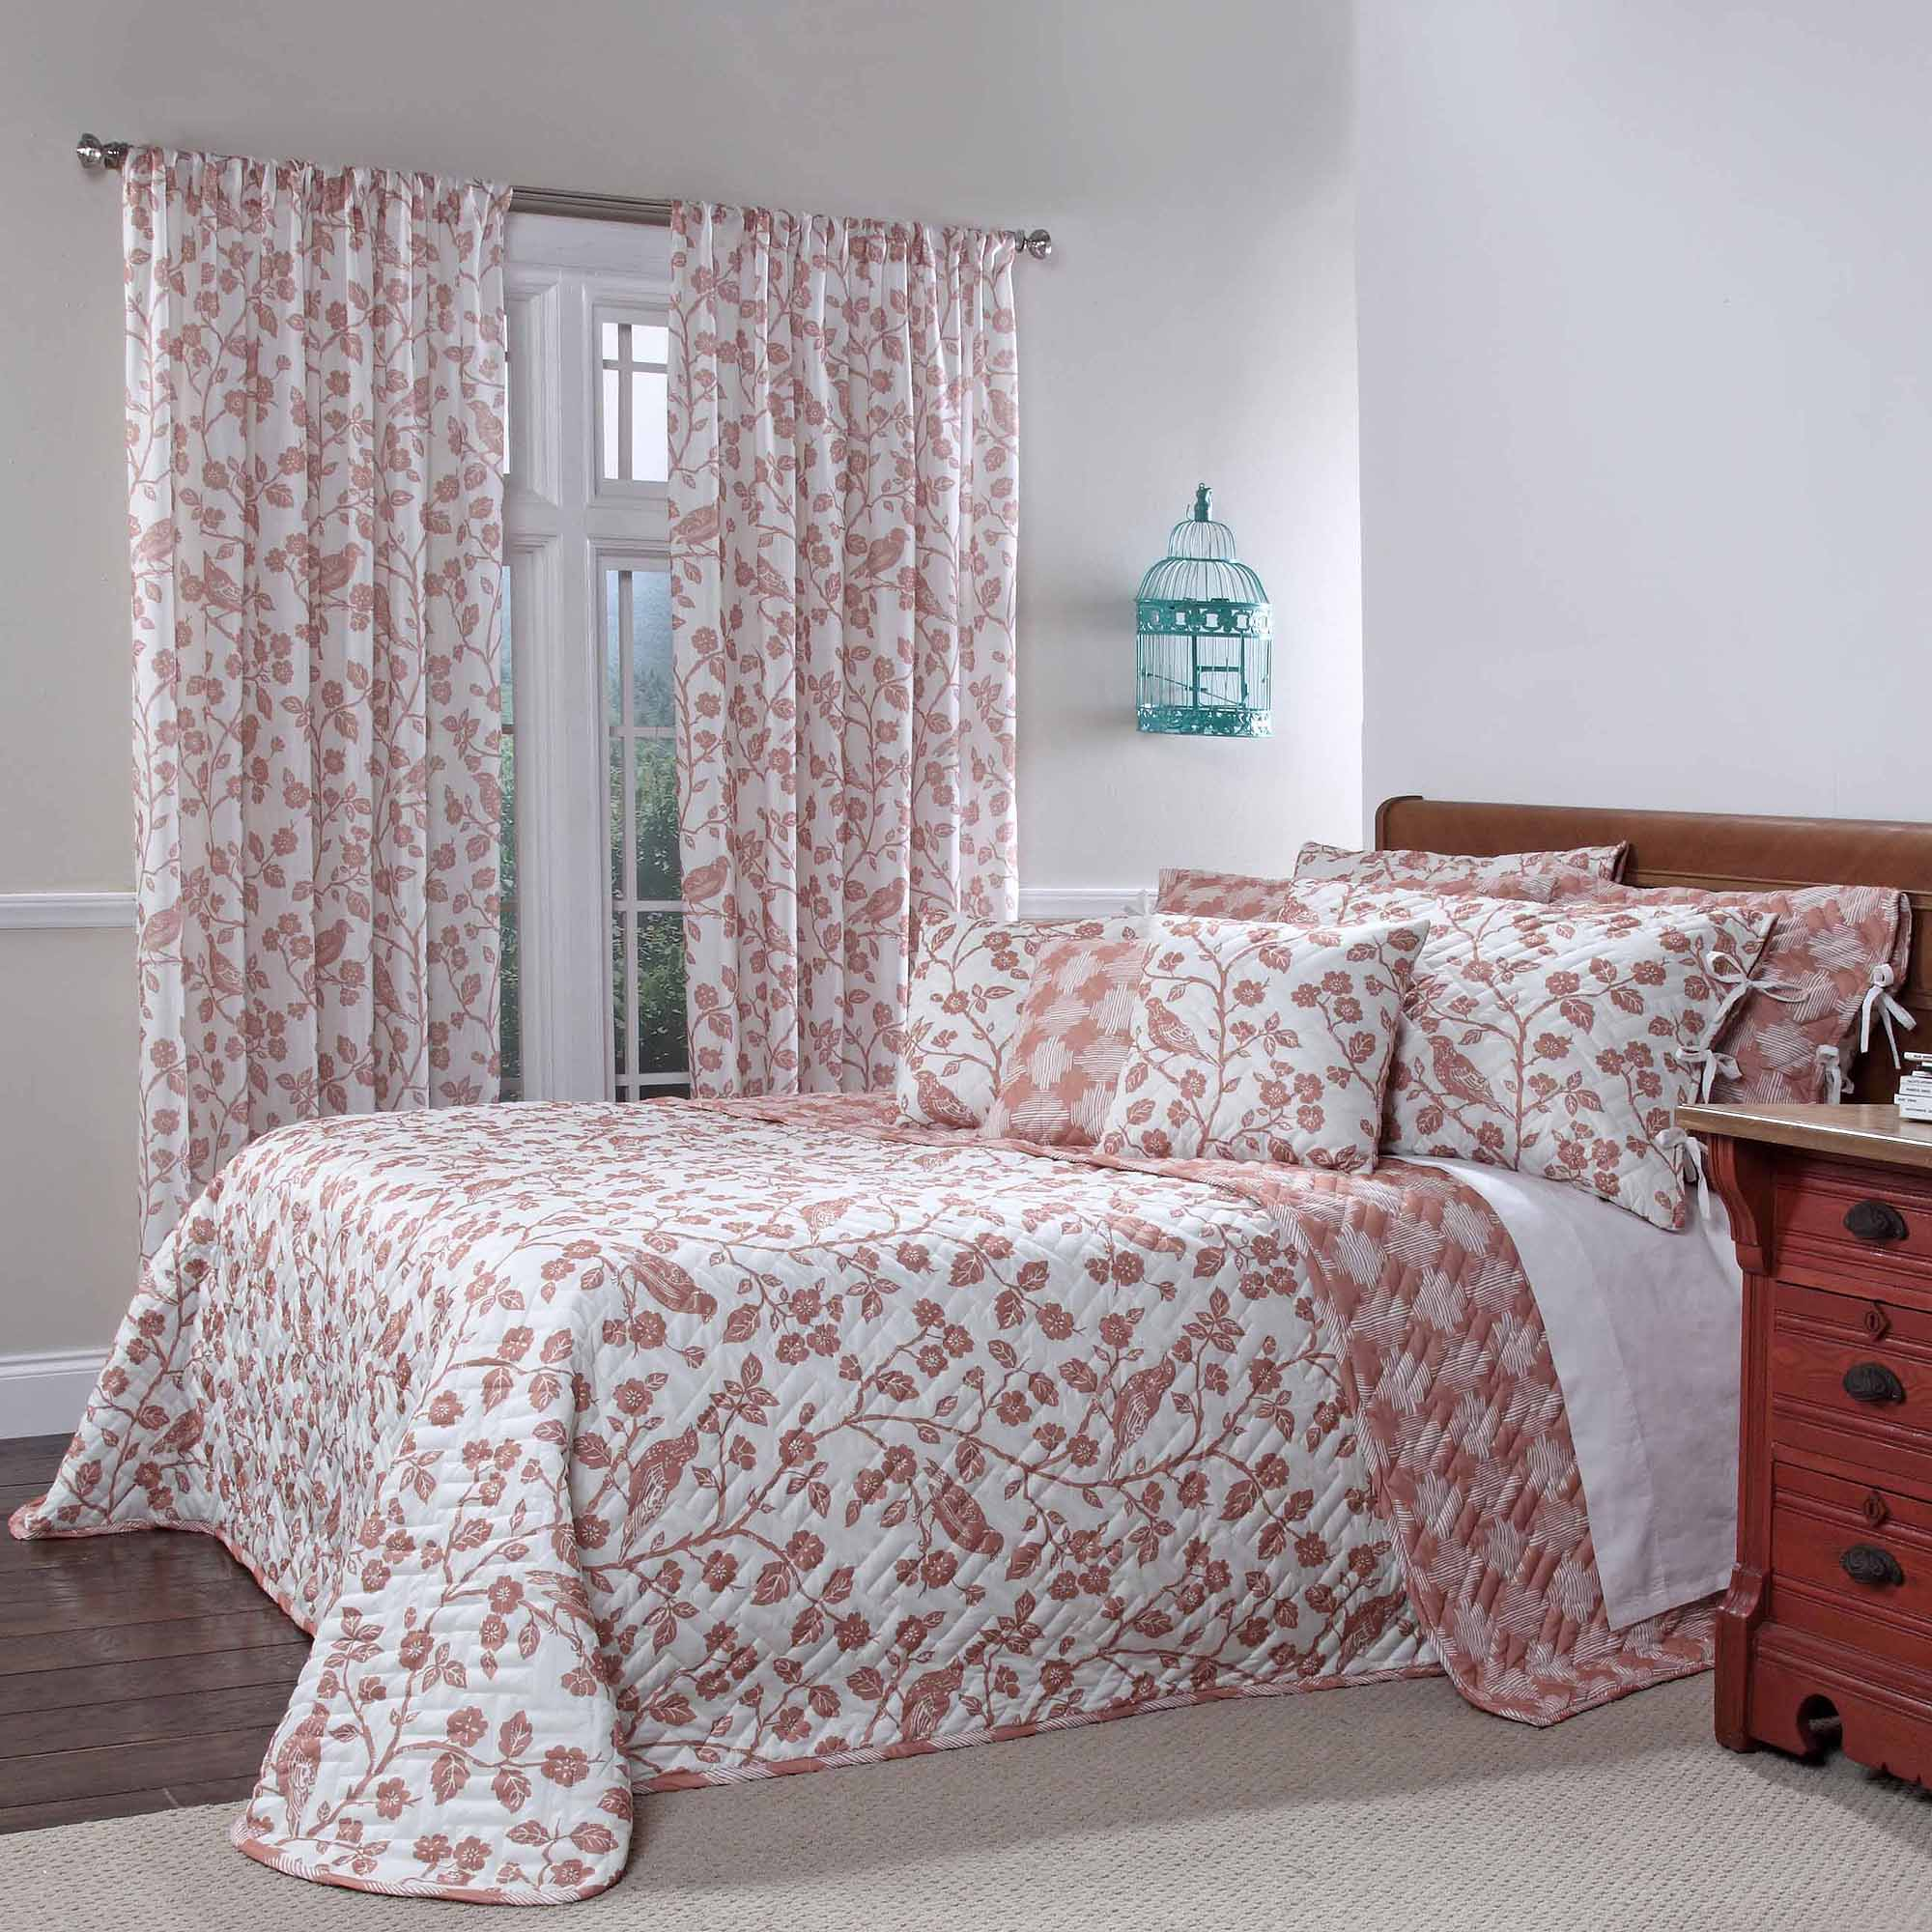 Botanica Quilted Reversible Bedspread, Sienna